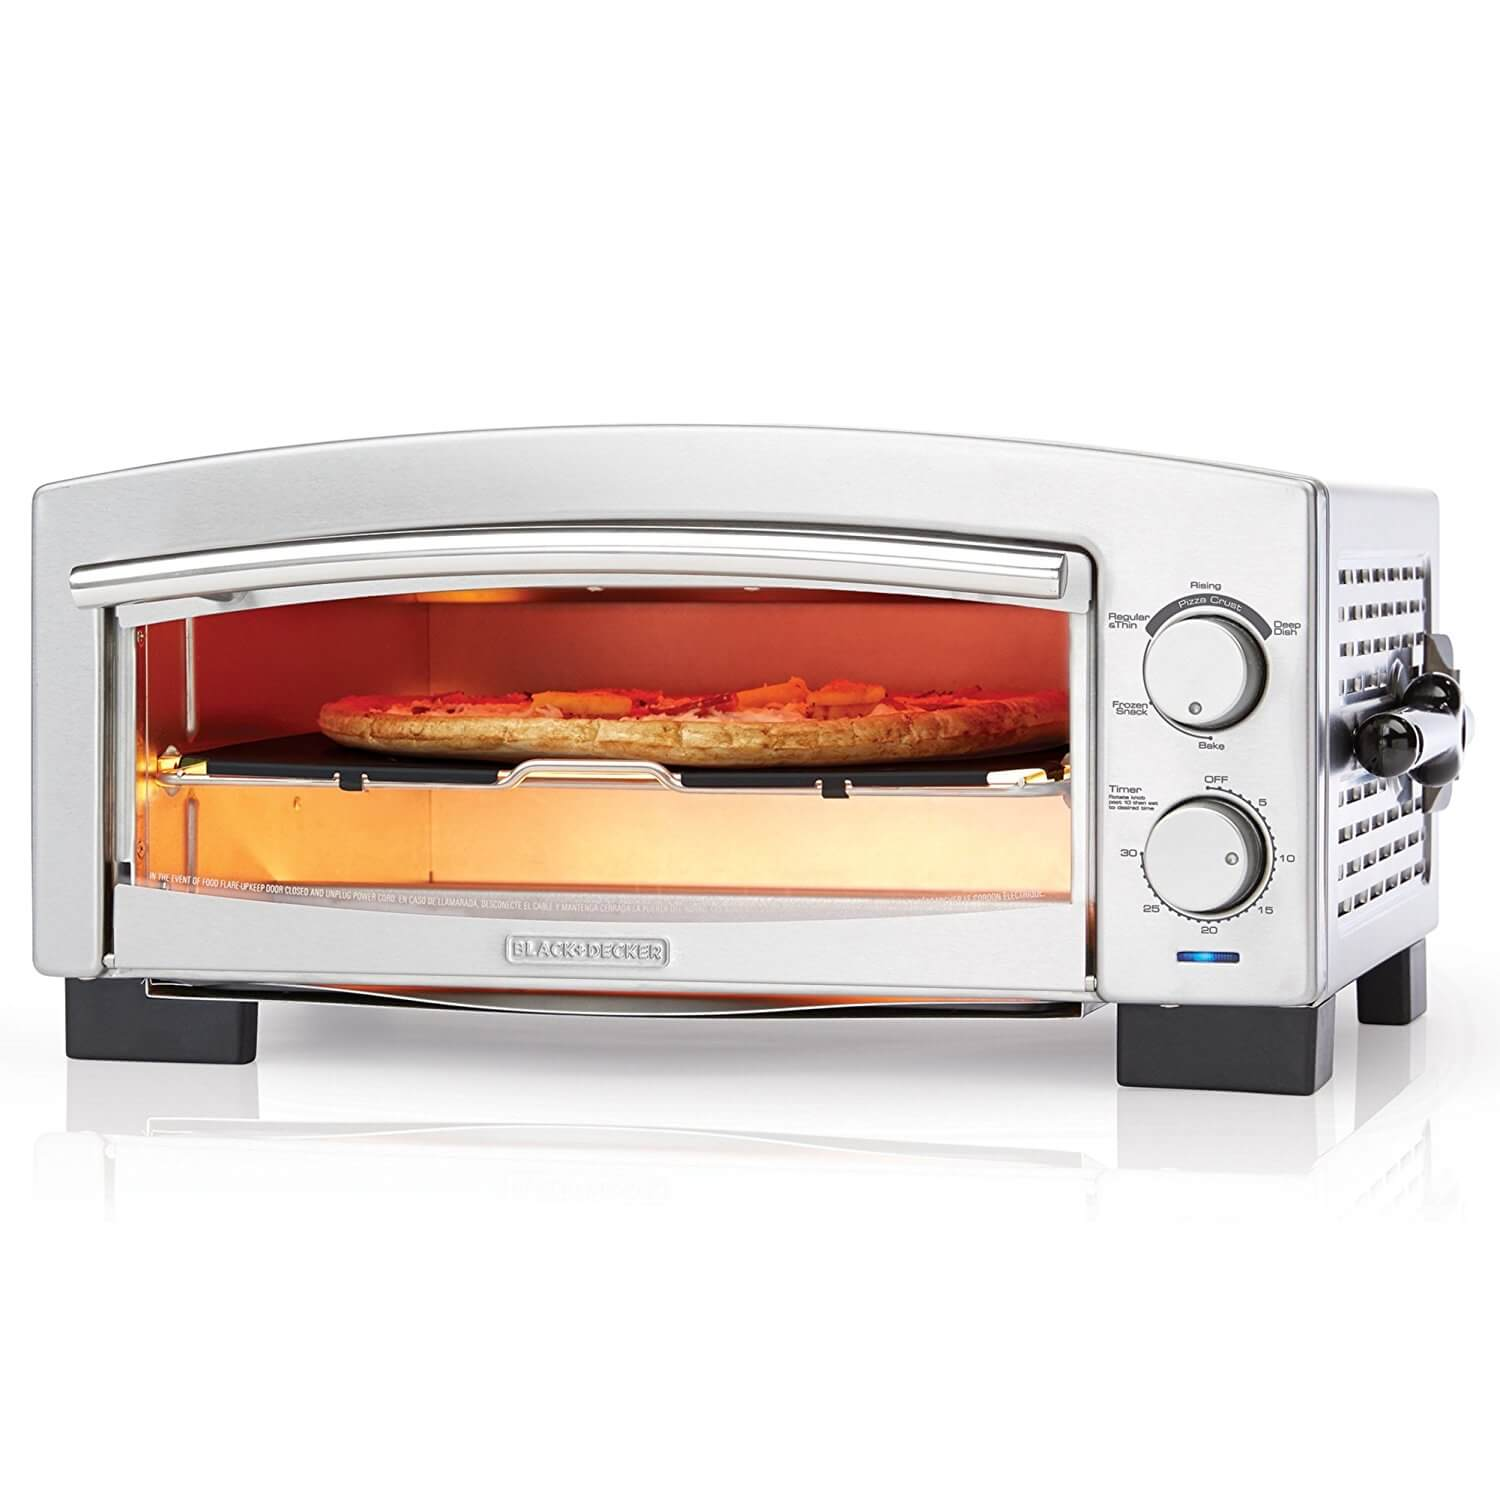 Enjoy Delicious Pizza With The 10 Best Pizza Maker | Smart Home Pick